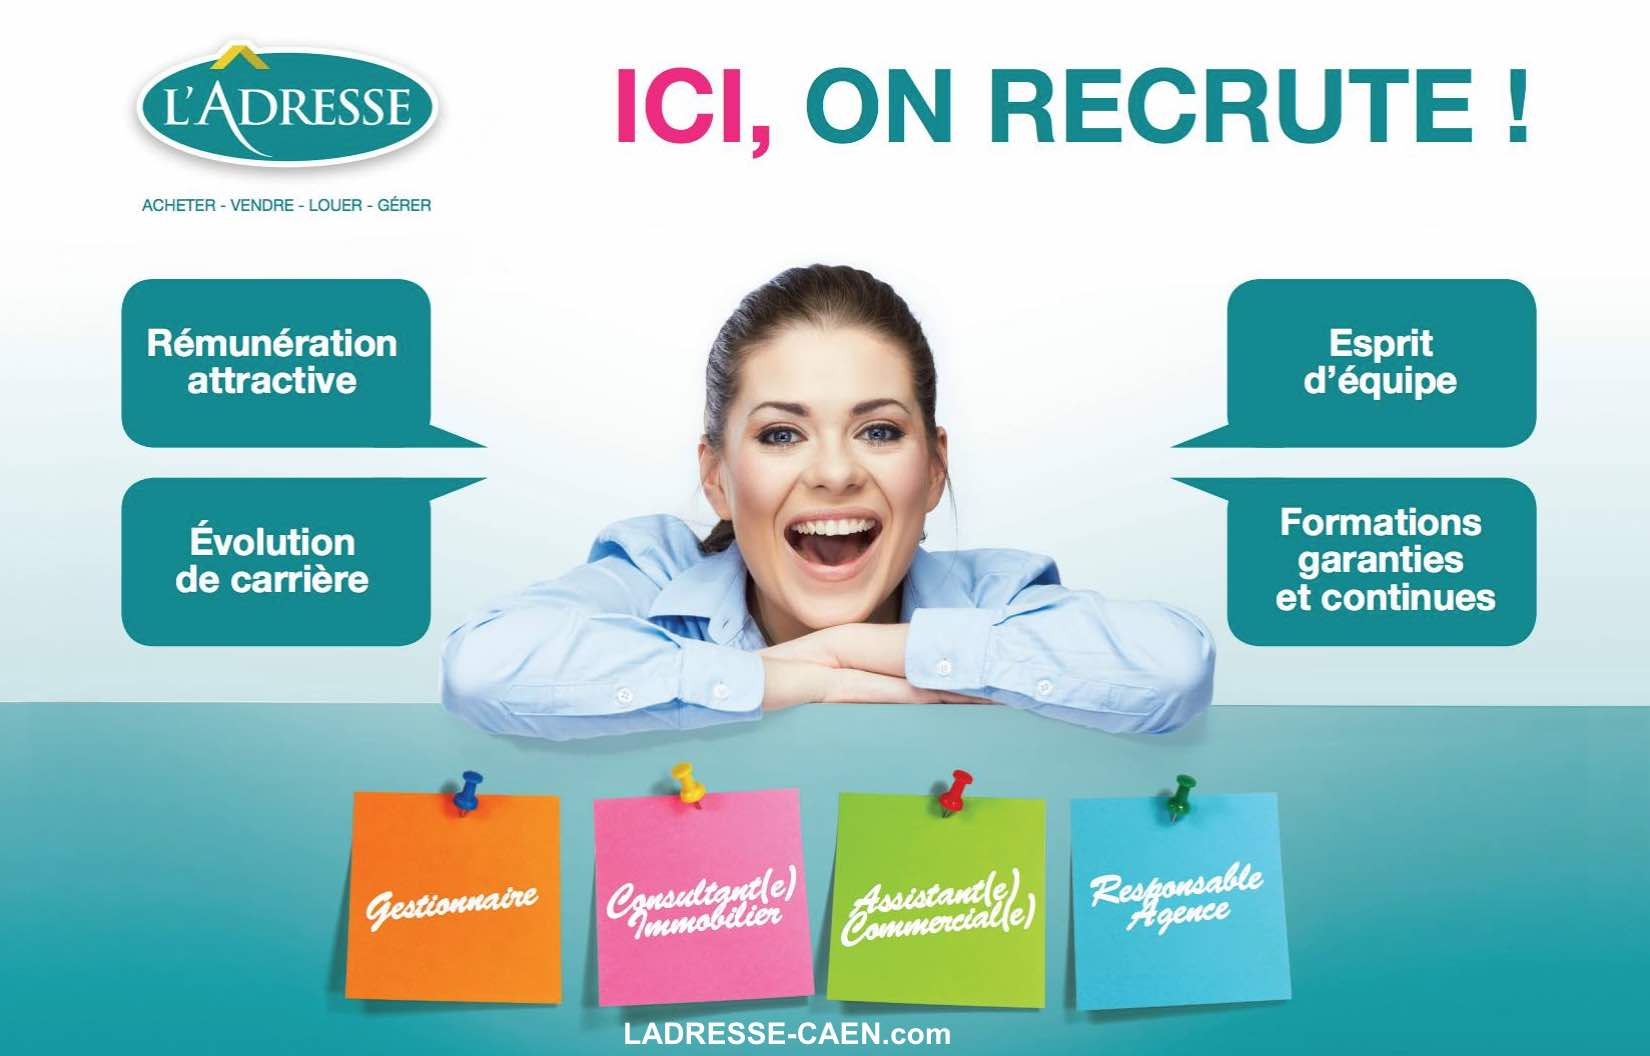 L'ADRESSE Agence Caennaise recrute !